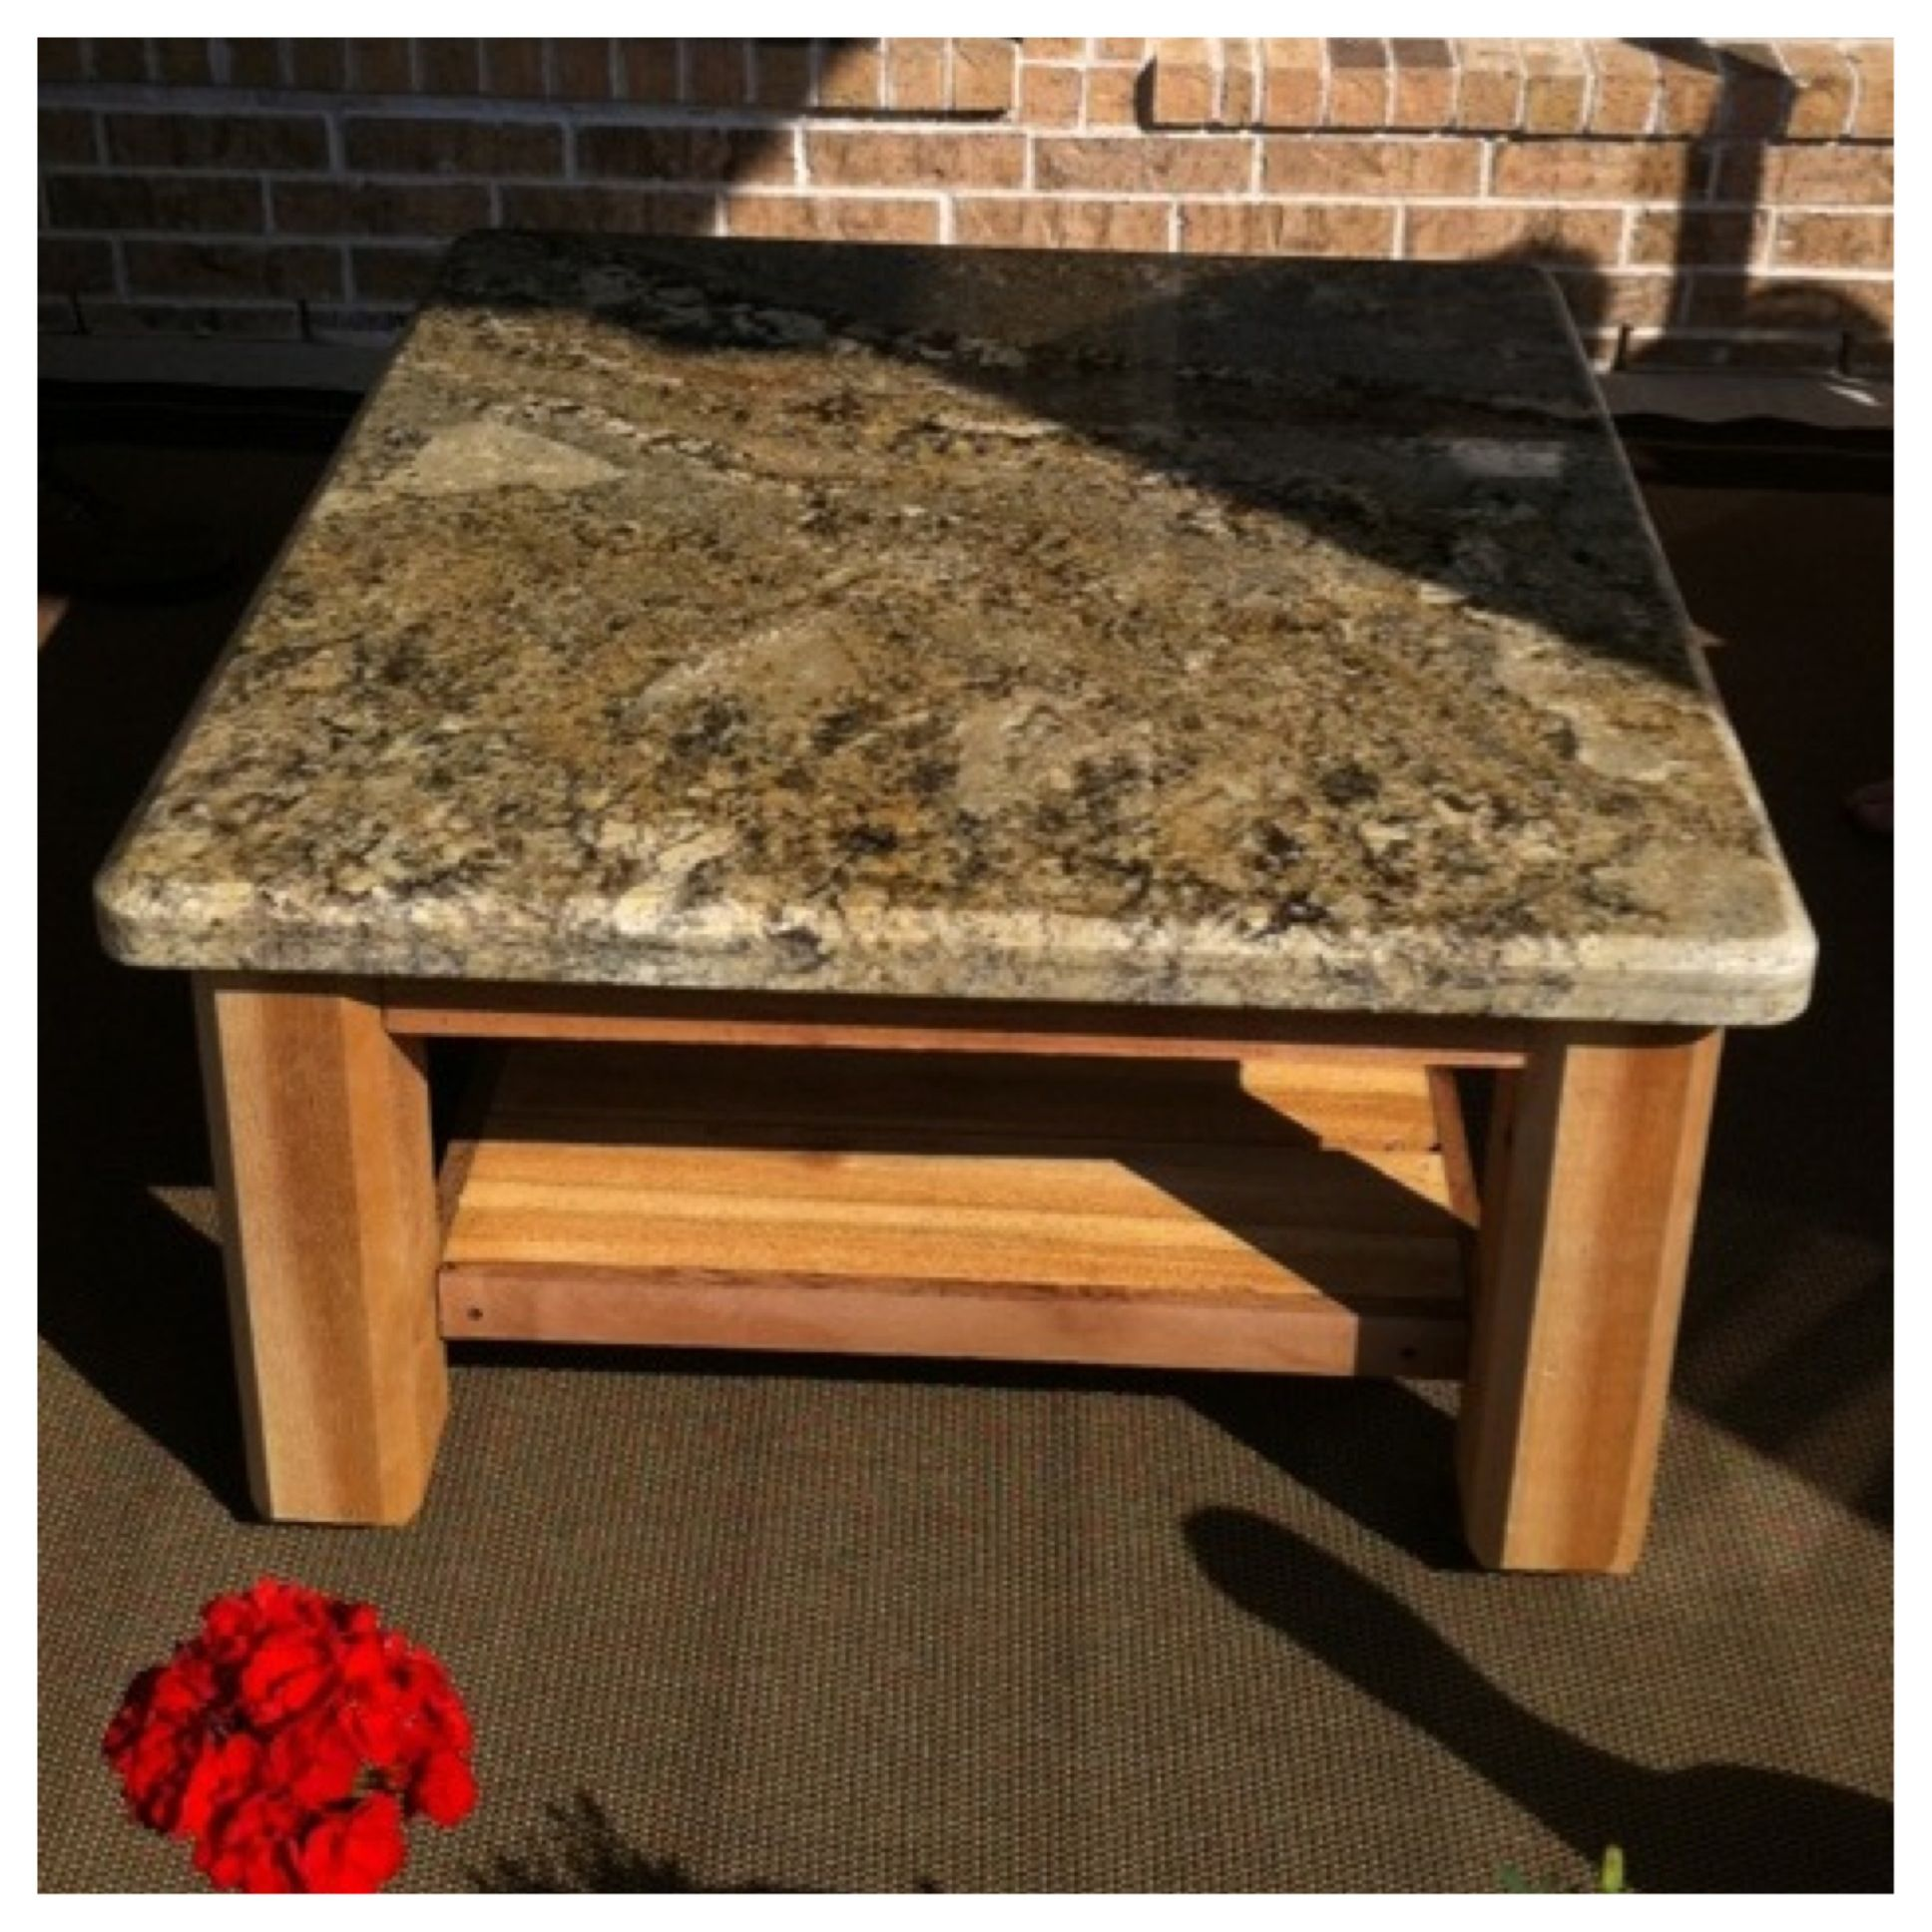 Custom Outdoor Patio Table With Granite Top Delivered To